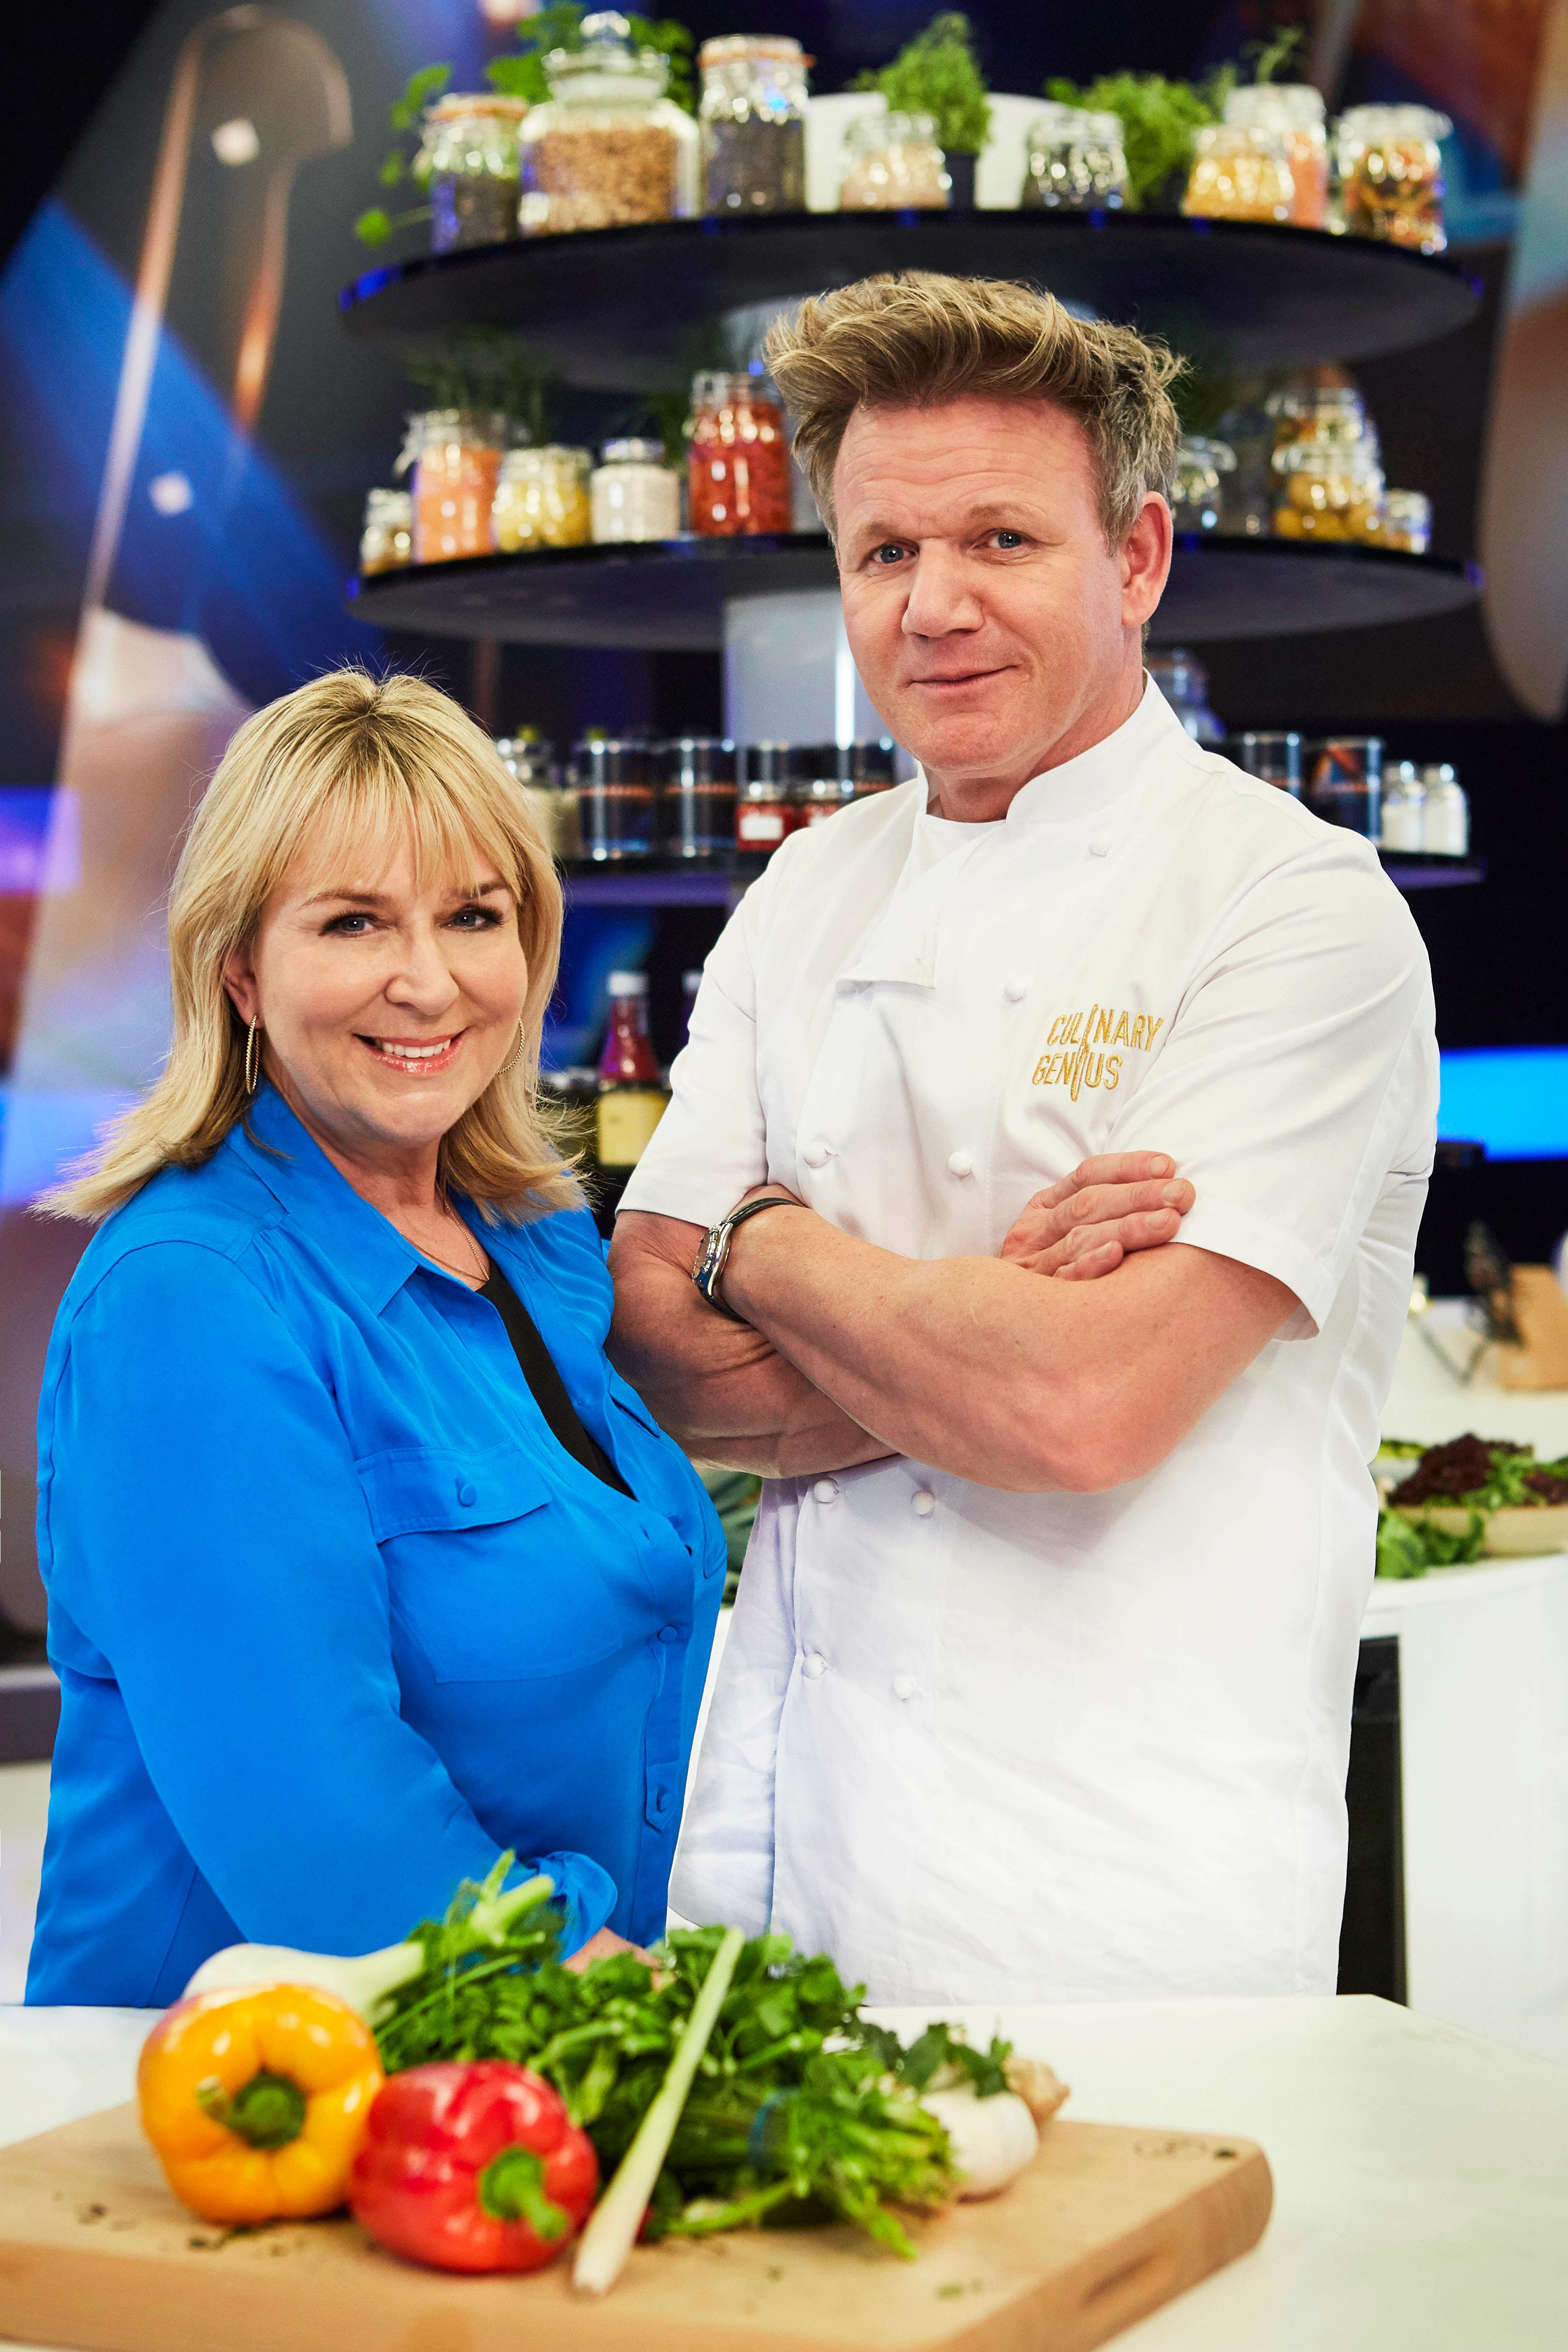 Gordon Ramsay's Brutal New Show 'Culinary Genius' Will Give 'Masterchef' A Run For Its